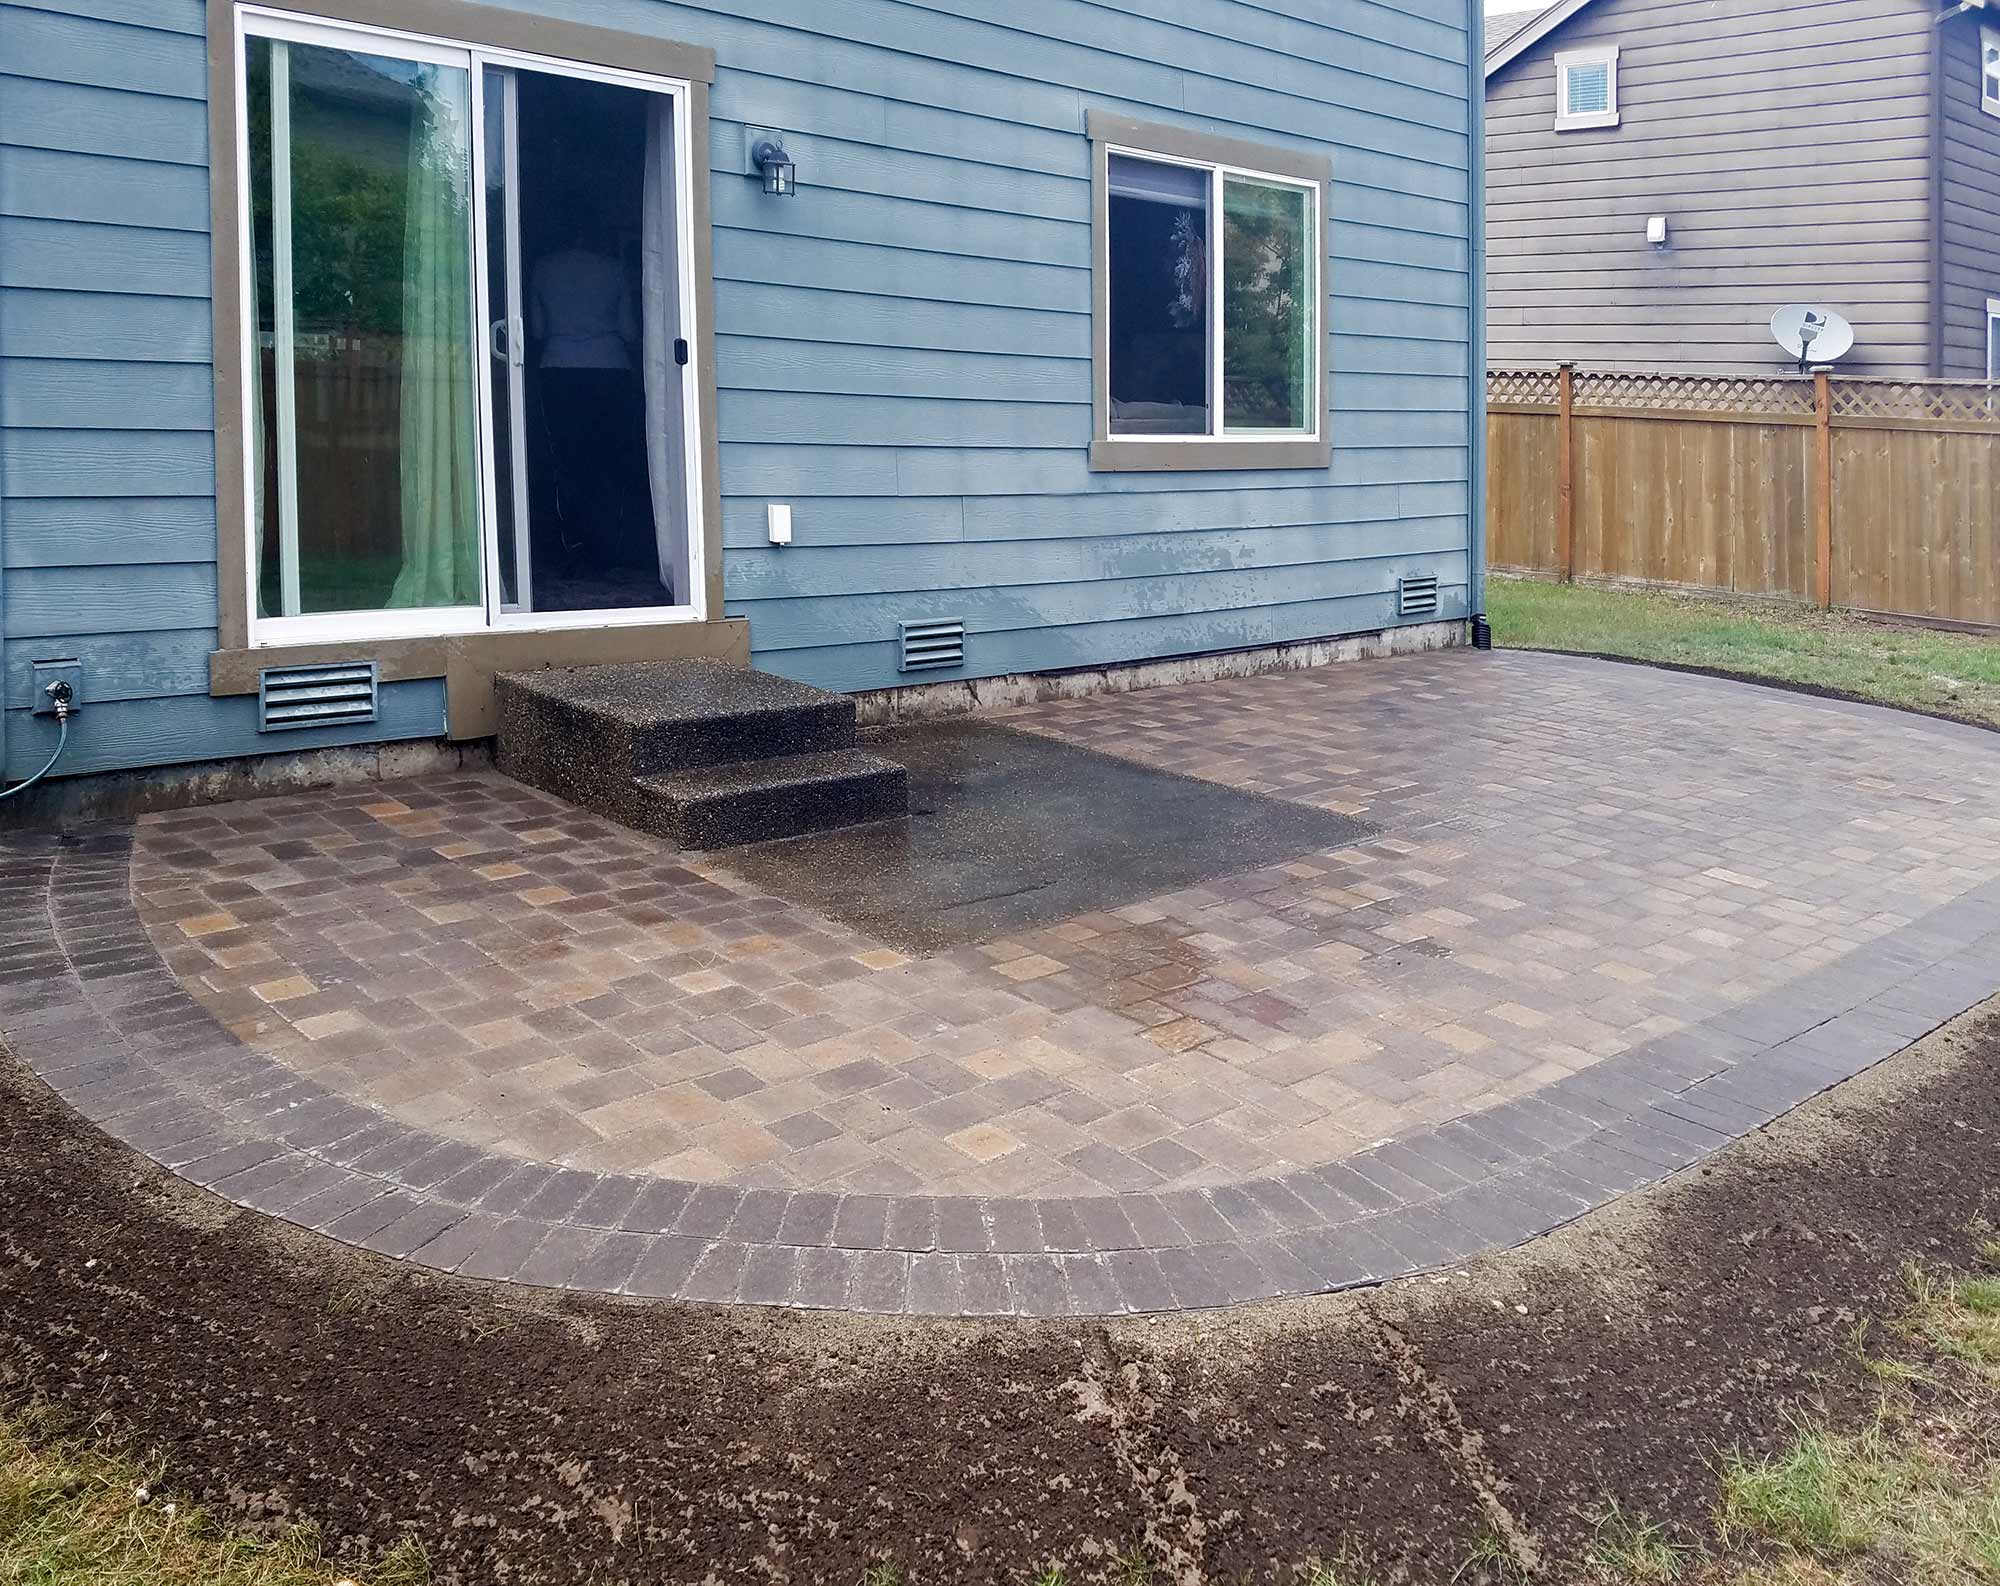 Ordinaire Paver Patio Extension Features Western Interlock Slimline Columbia Pavers  With A Double Border.